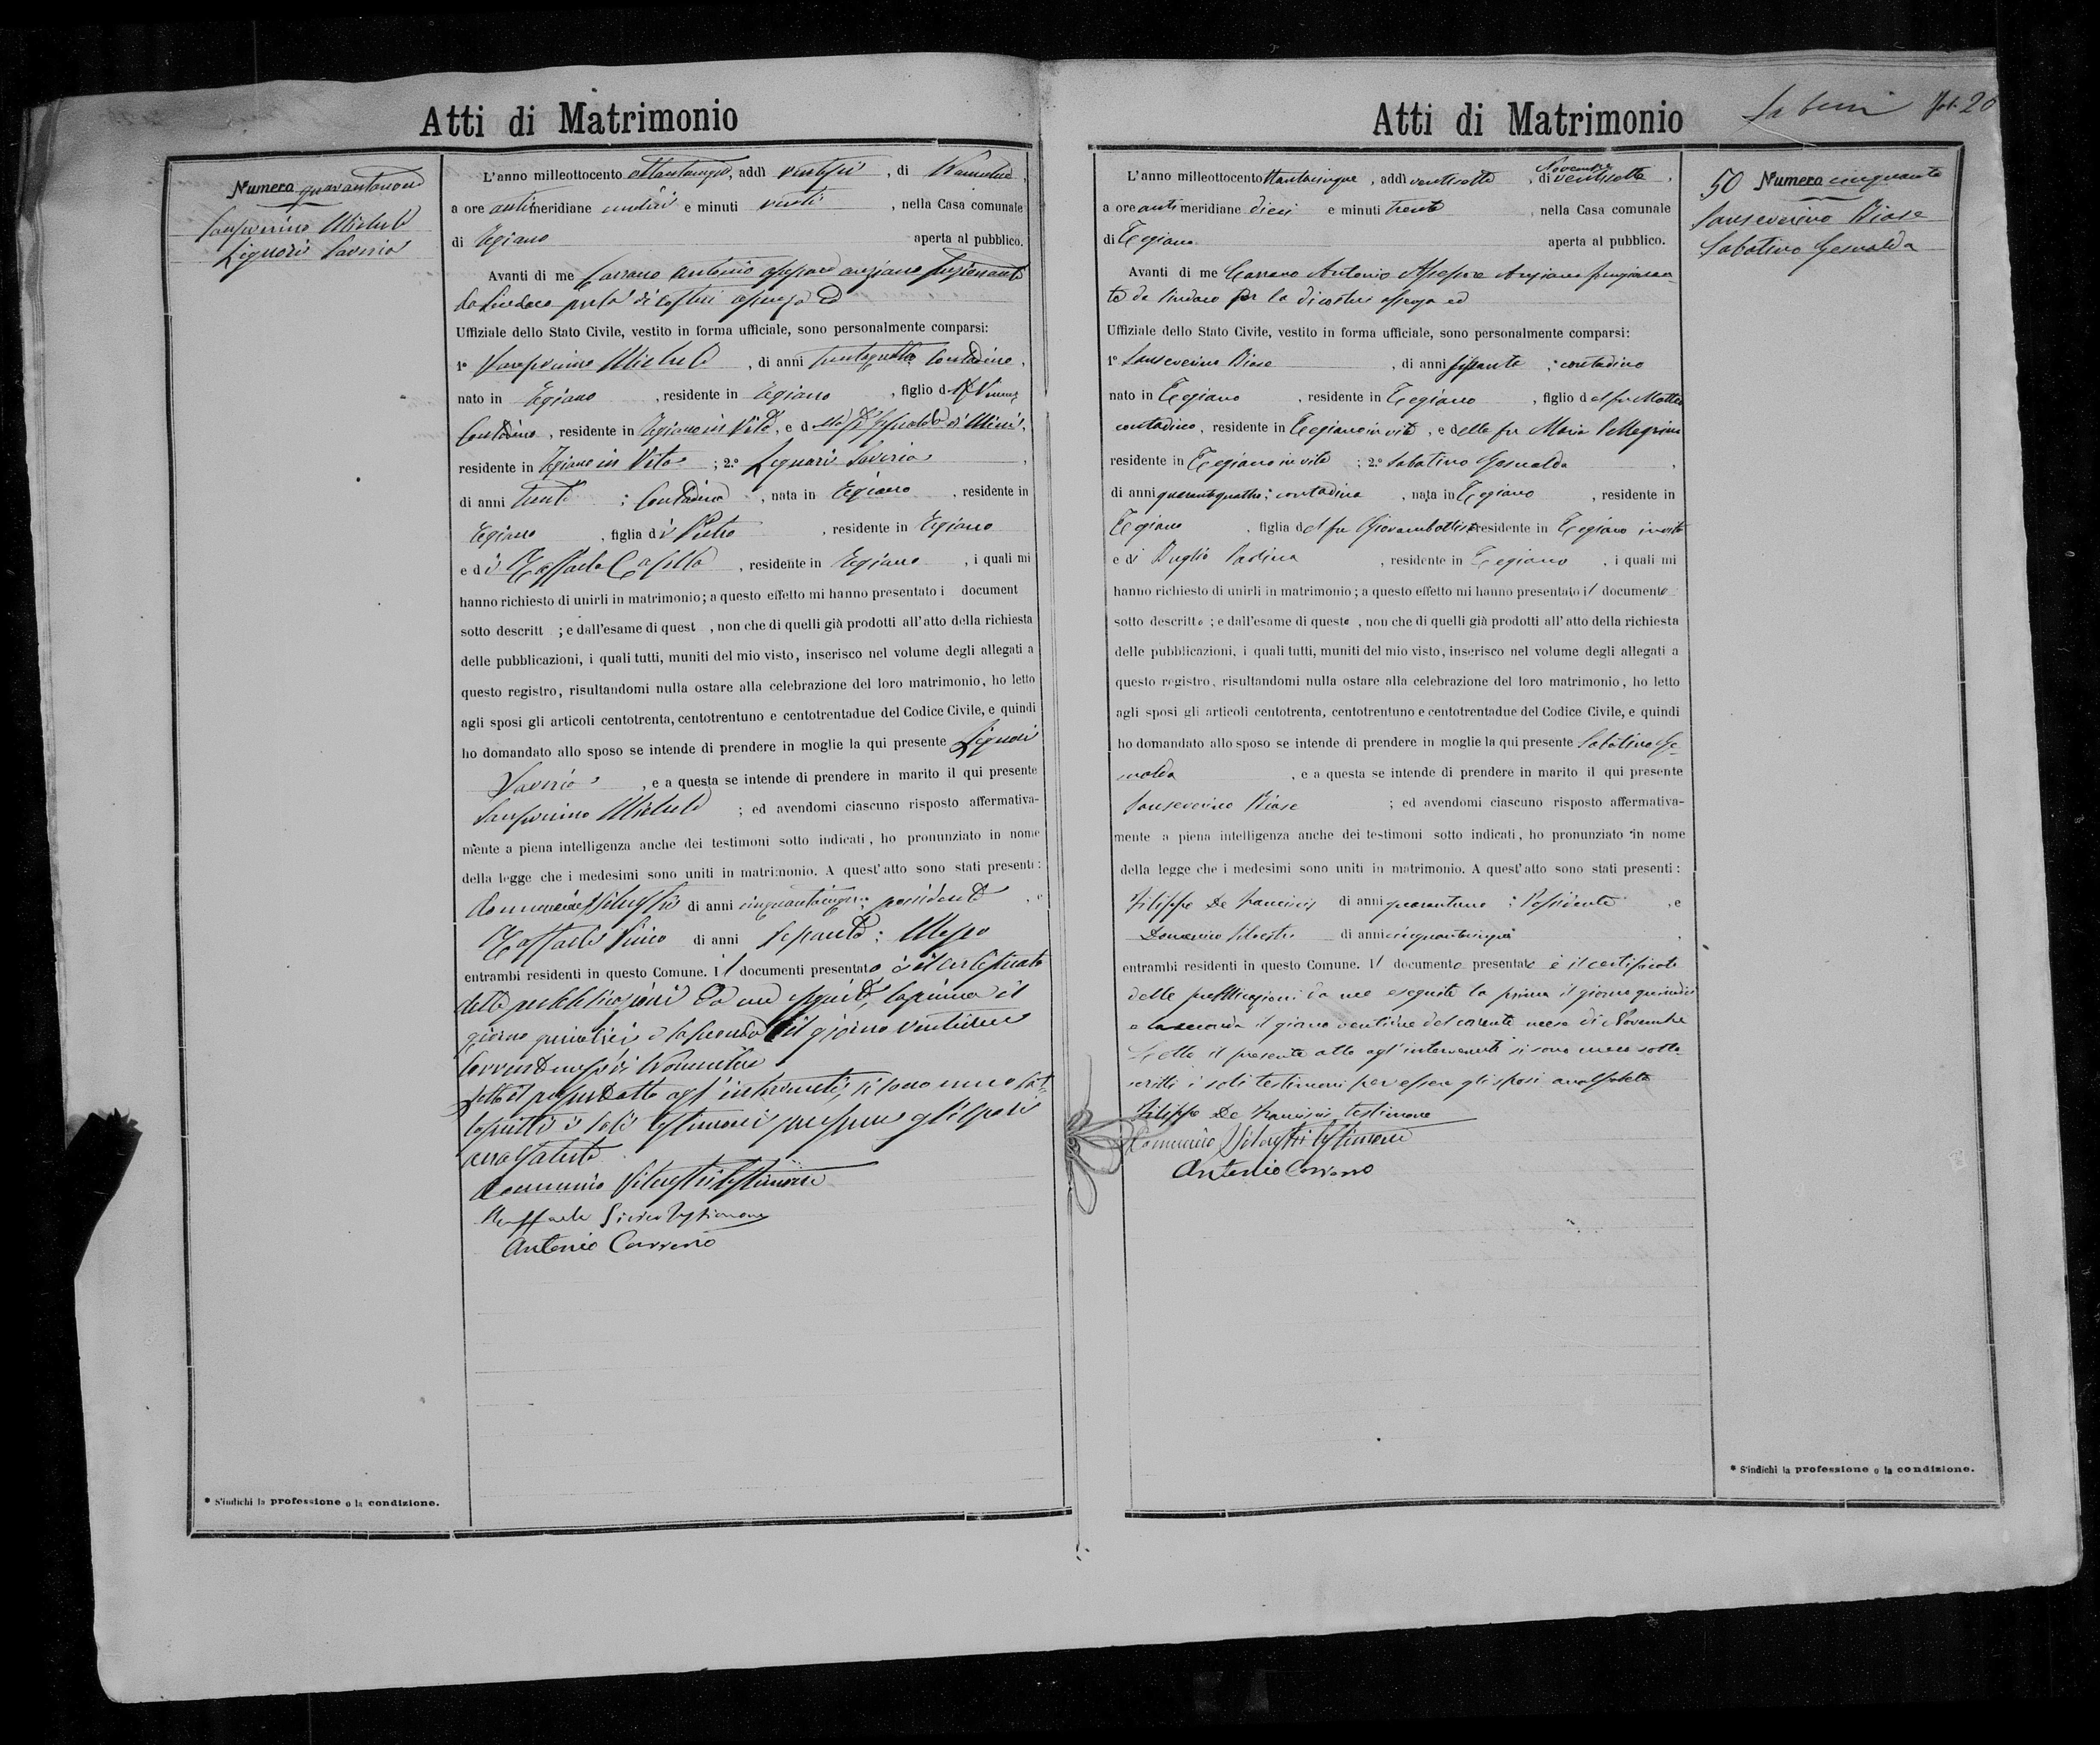 1885 Marriage Record Of Michele Sanseverino Marriage Records Marriage Family Research